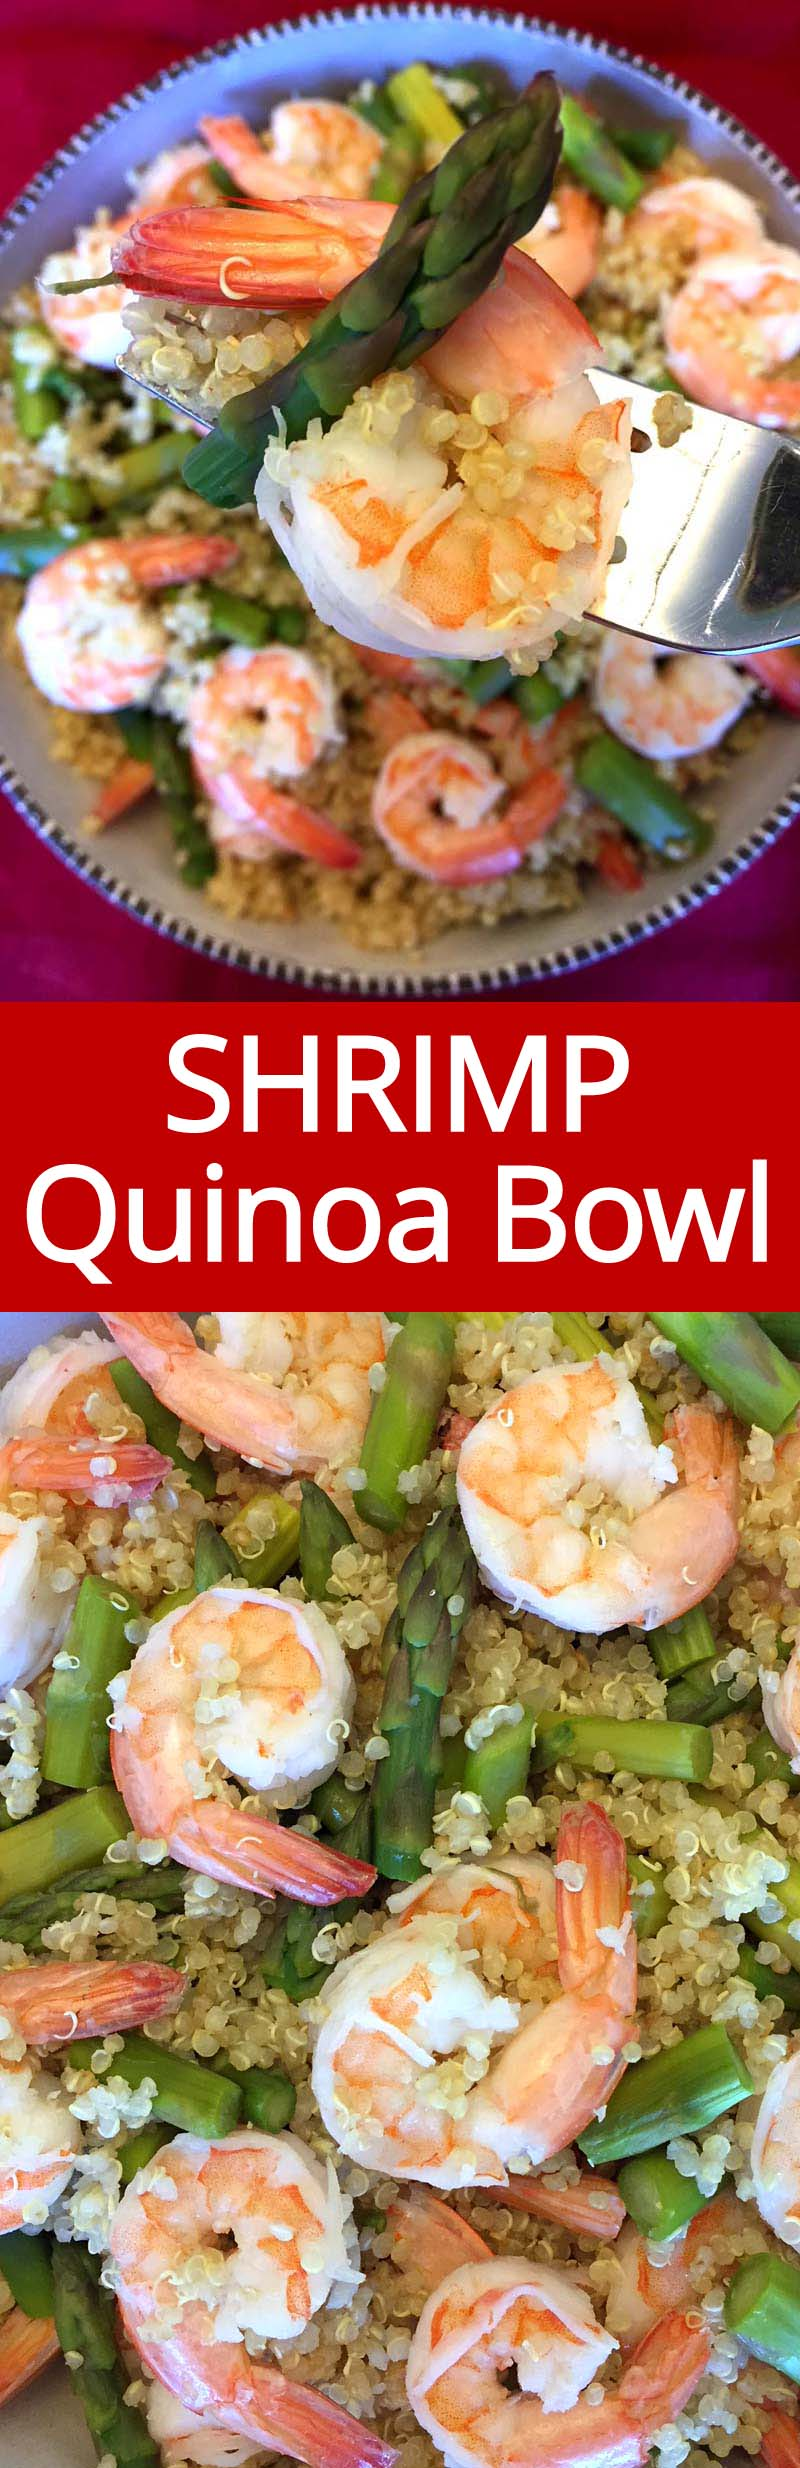 This shrimp asparagus quinoa bowl is amazing! So healthy, filling and delicious! So easy to make, perfect for weekly meal prep!